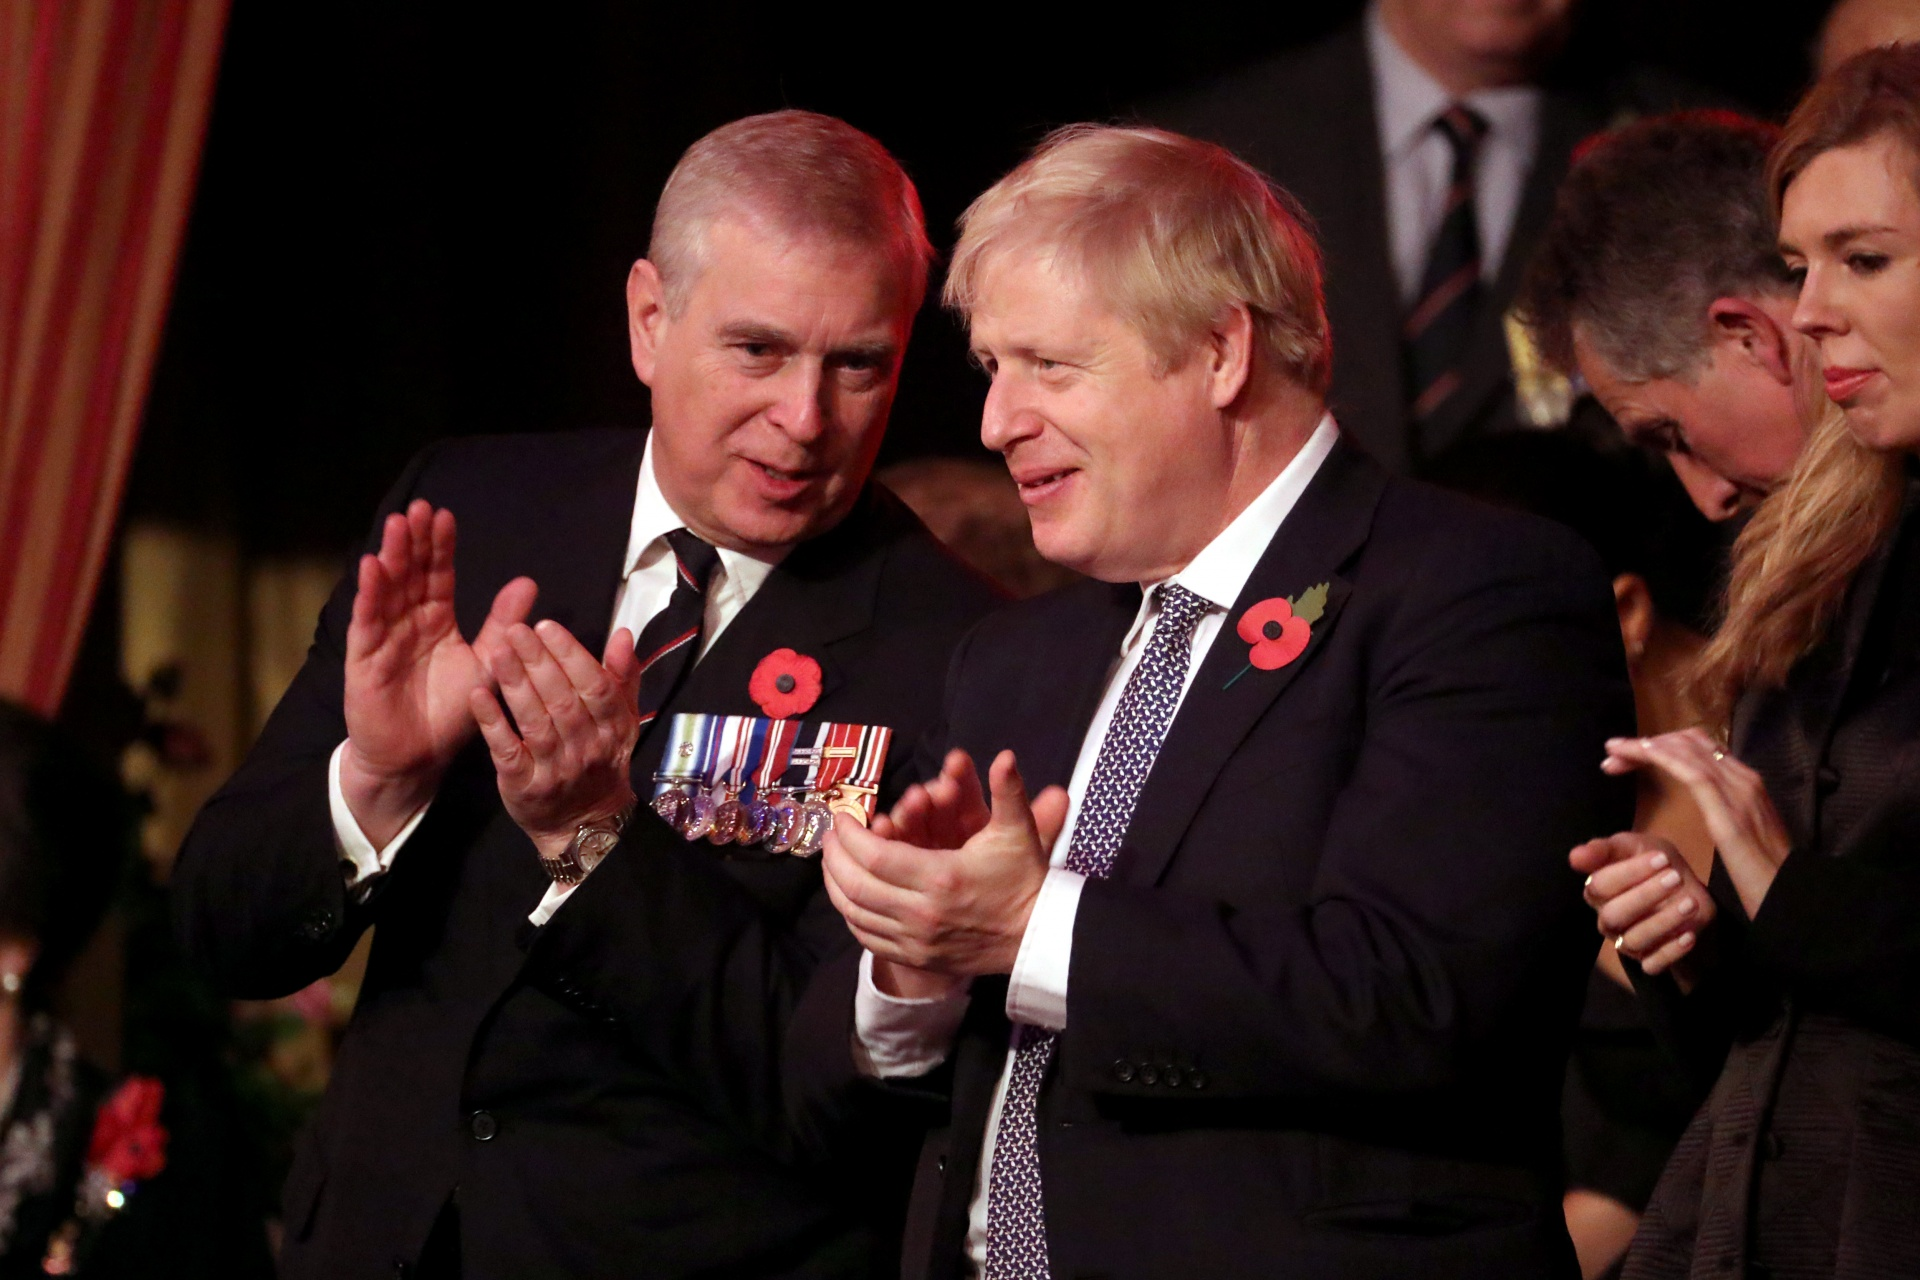 British Prince Andrew and Conservative Prime Minister Boris Johnson